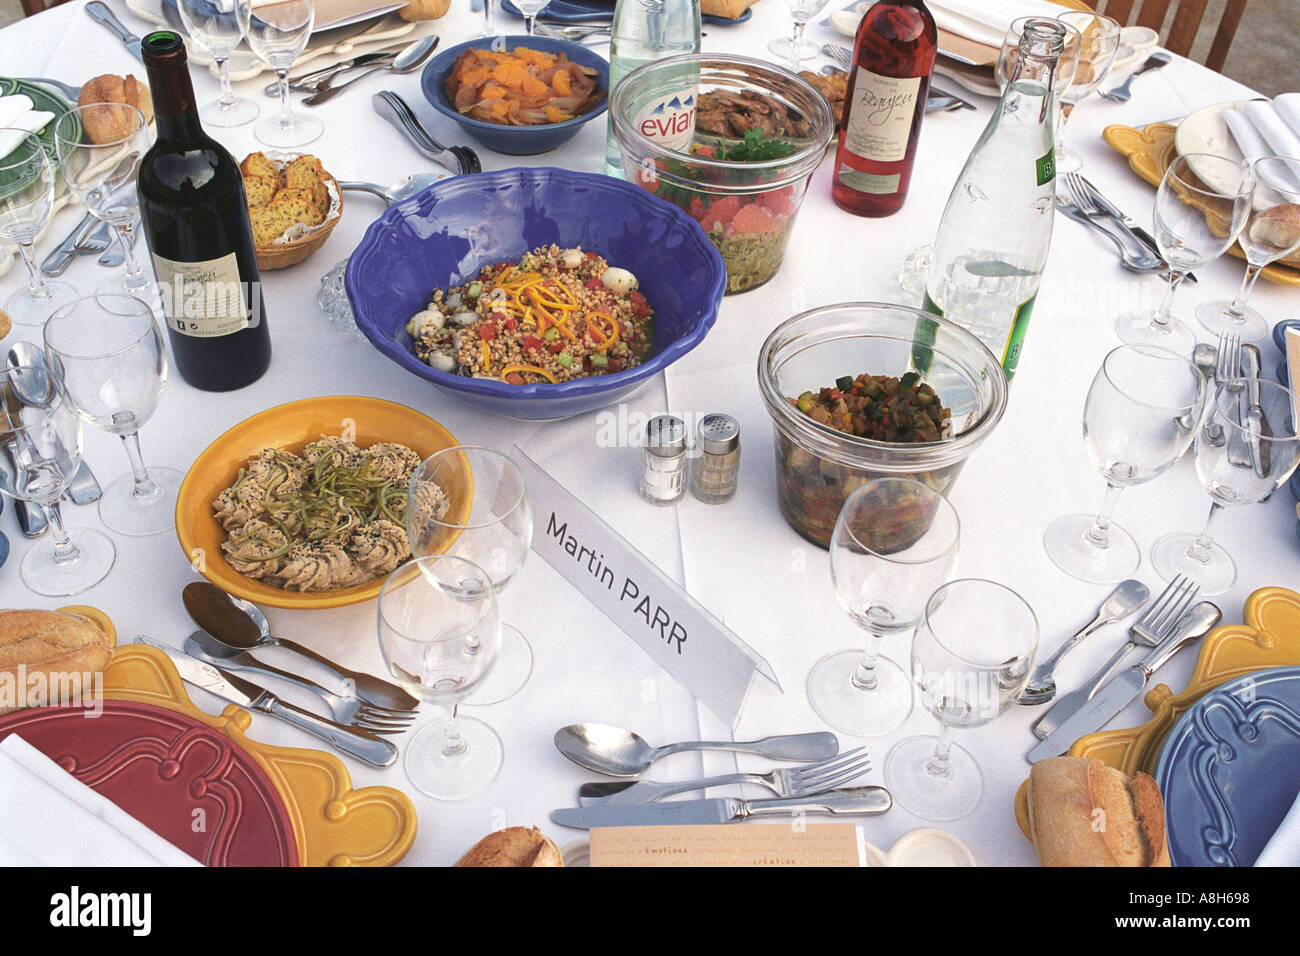 Martin Parr Magnum photographer table at dinner party Arles France HOMER SYKES - Stock Image